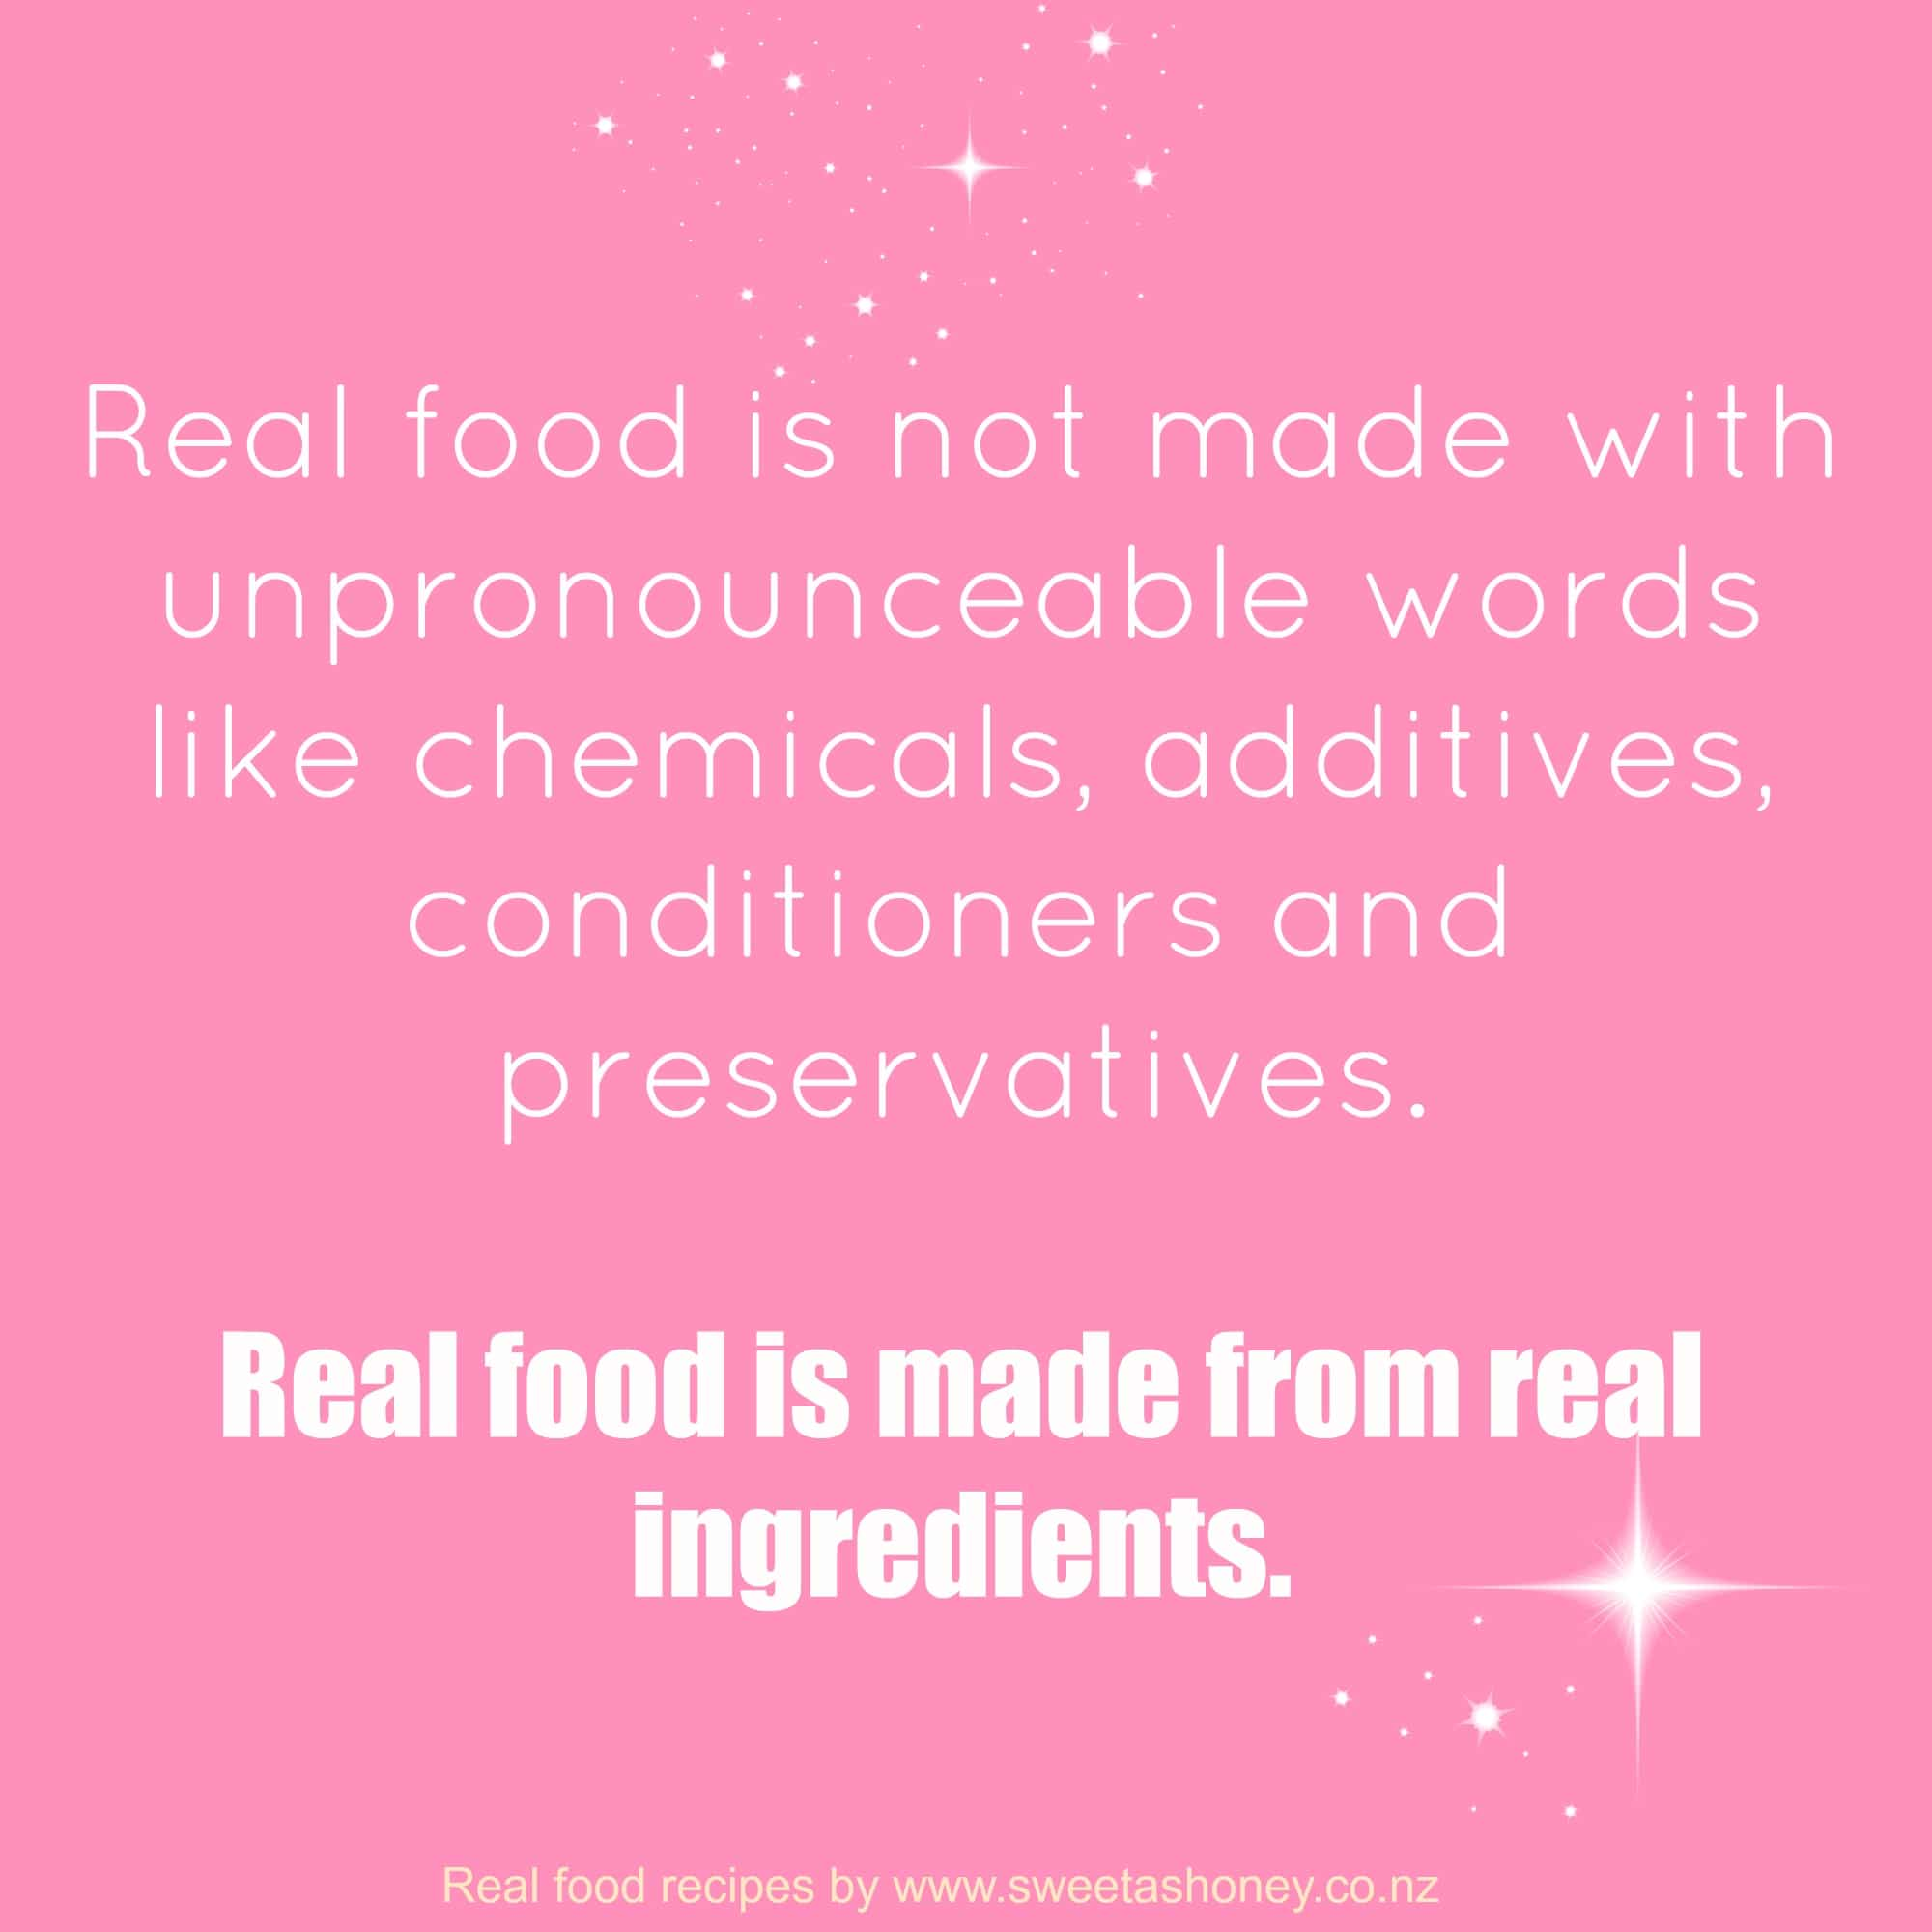 real food definition